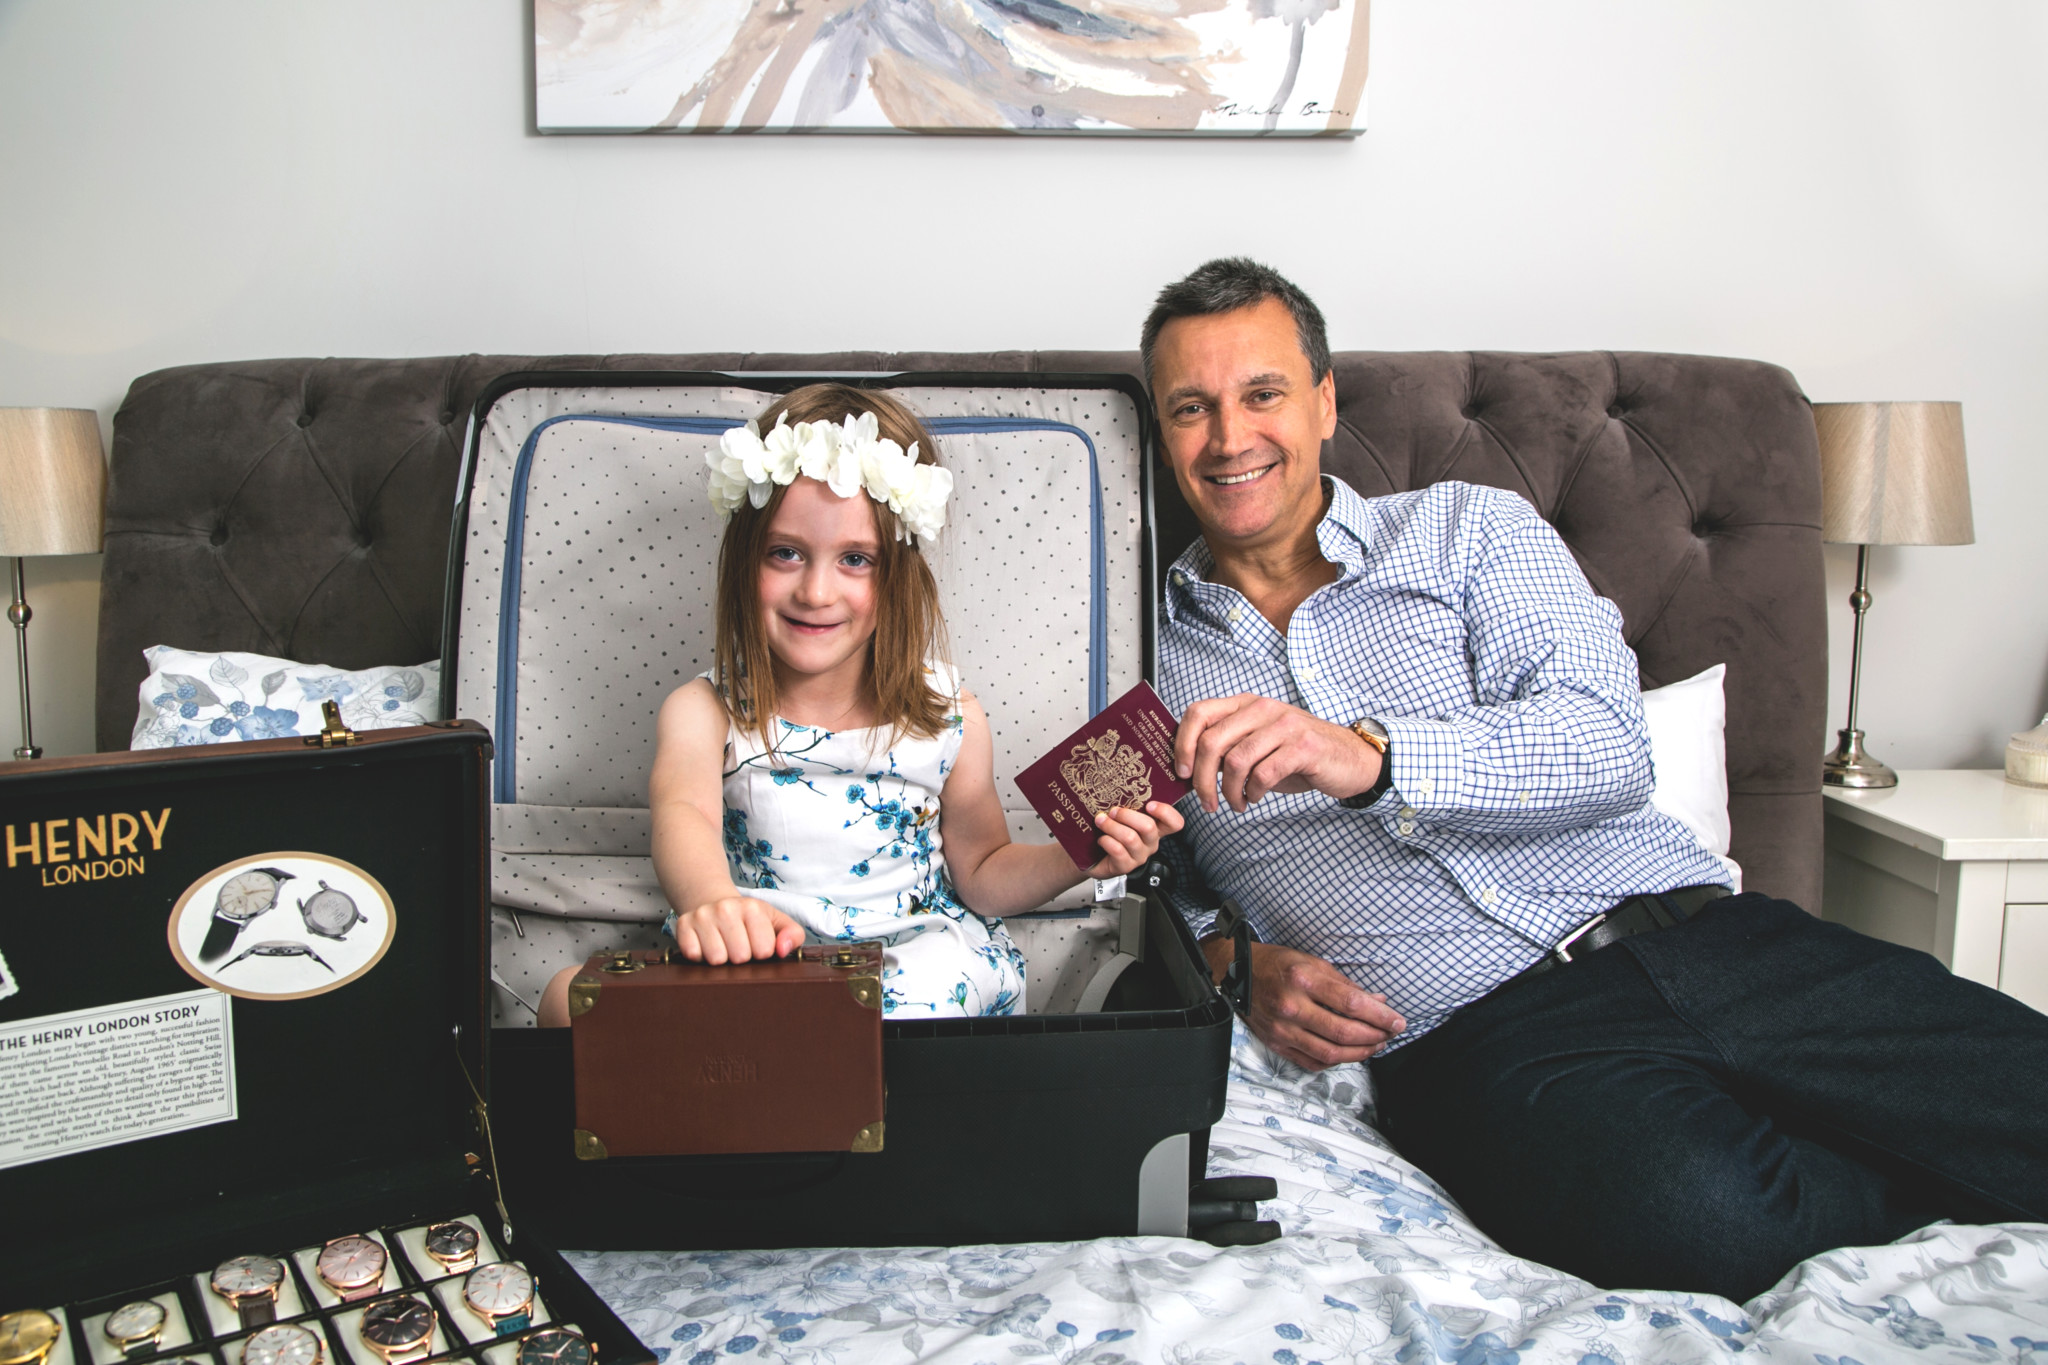 Paul Harry with his daughter in his 2016 WatchPro Hot 100 profile when he was travelling the world promoting Henry London.